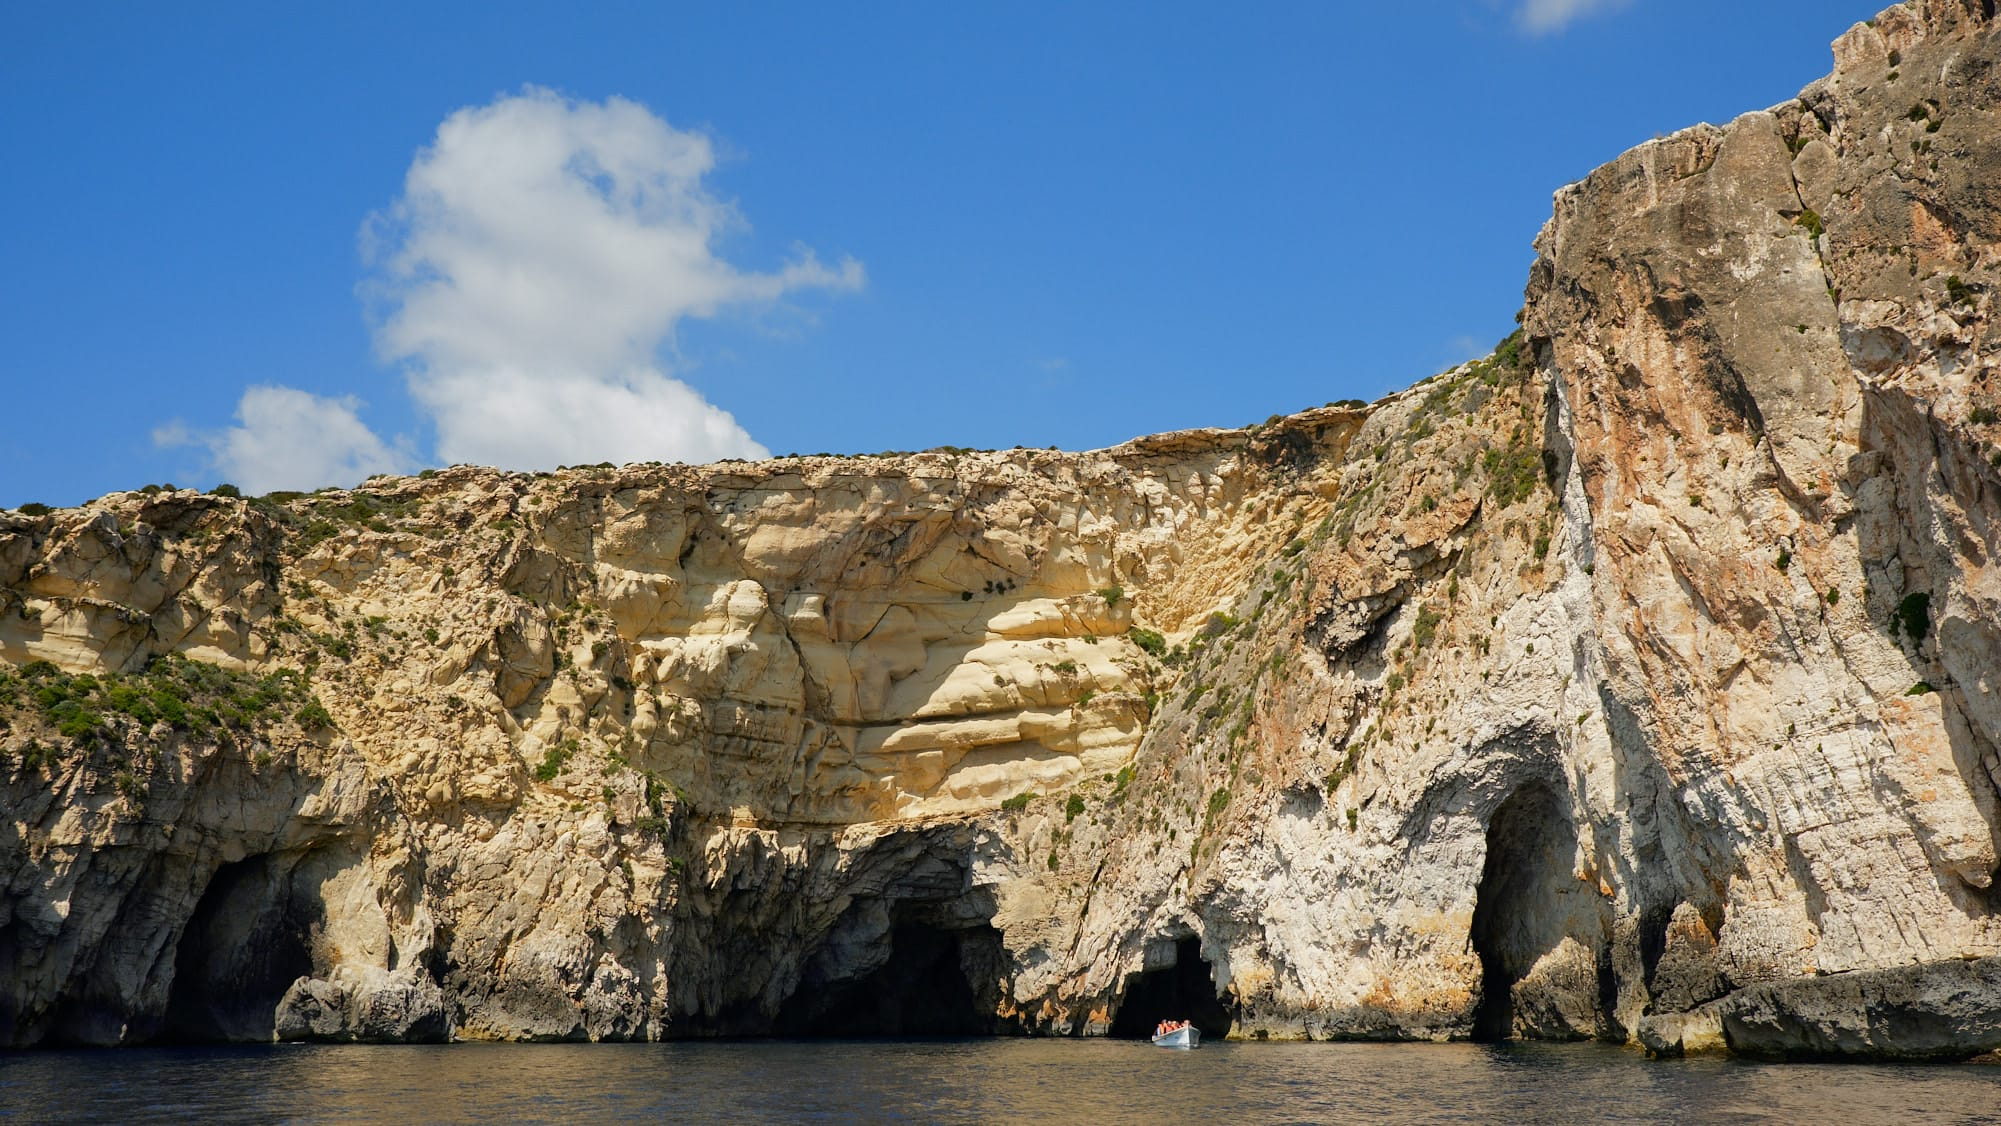 Blue Grotto cliffs and caves